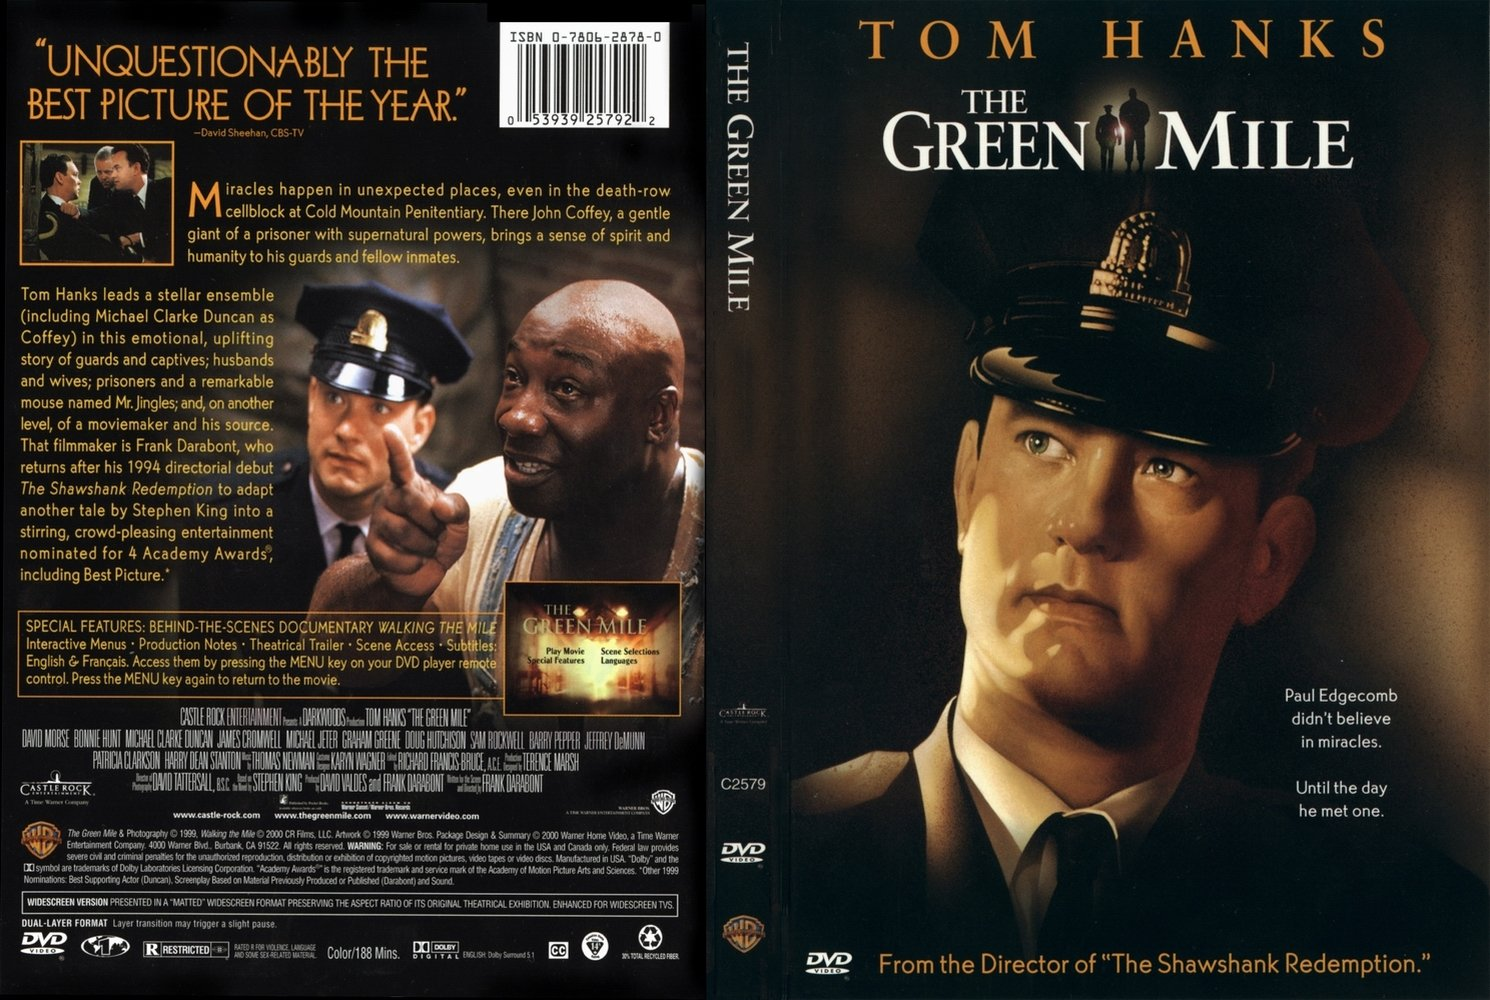 The green mile 1999 full movie download